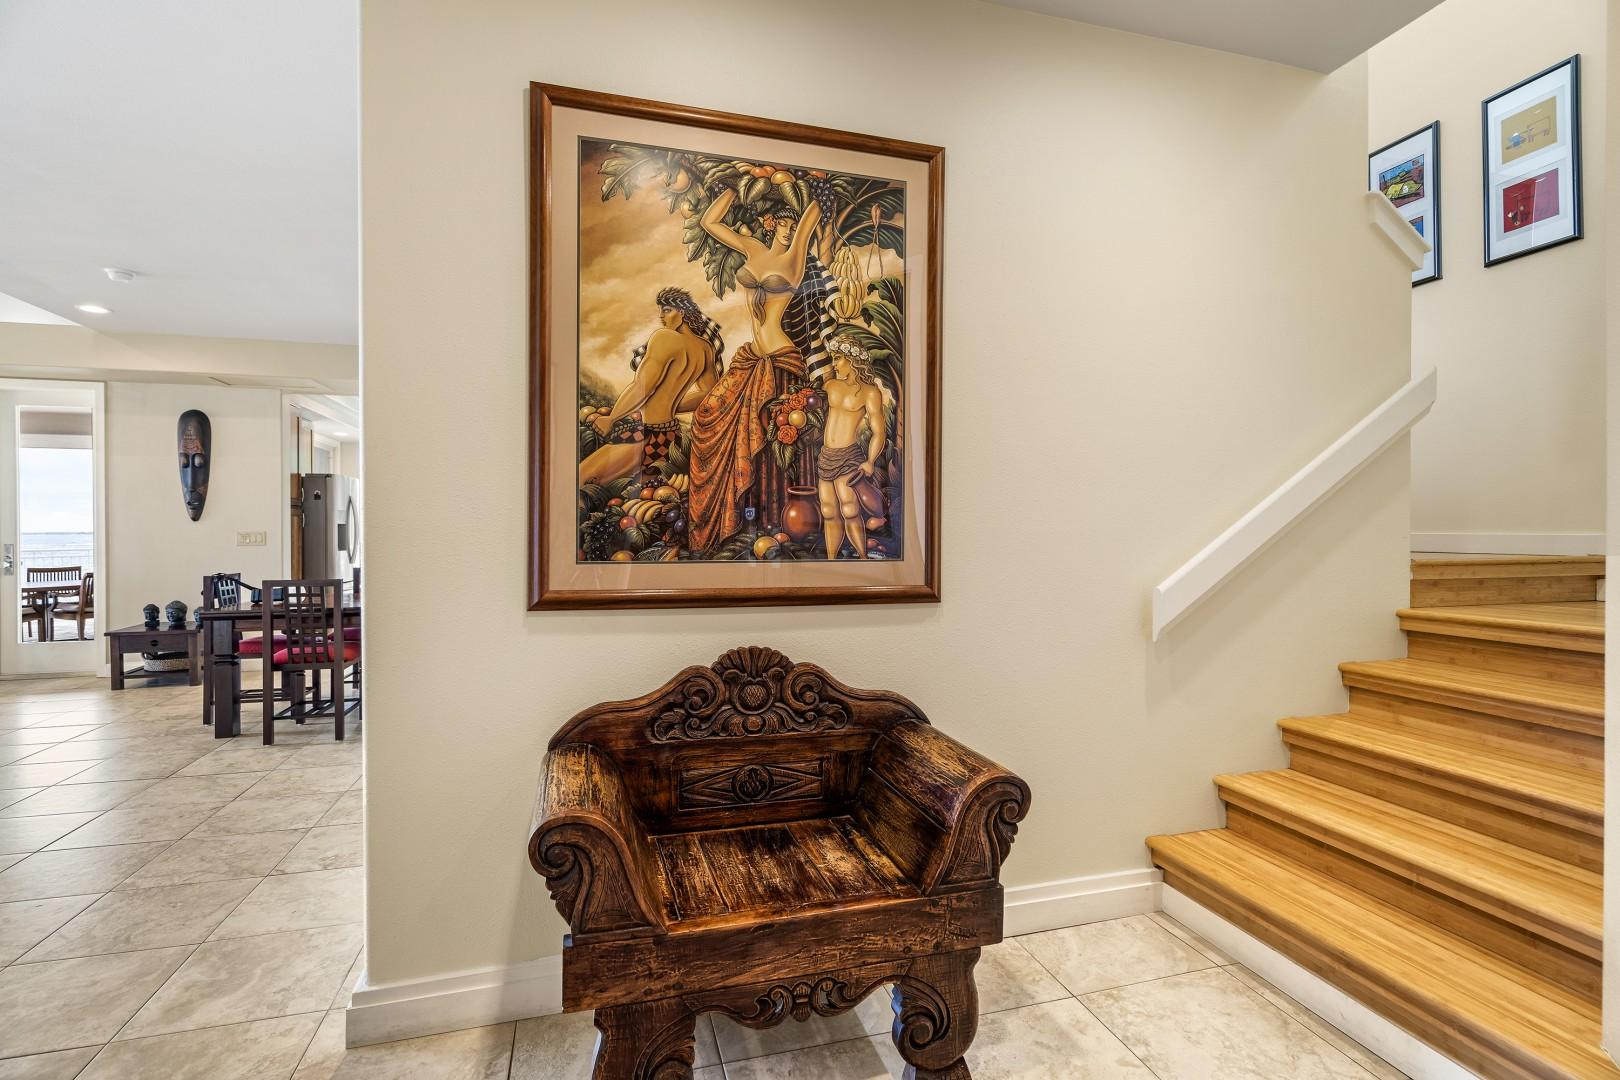 Foyer with Indonesian touches